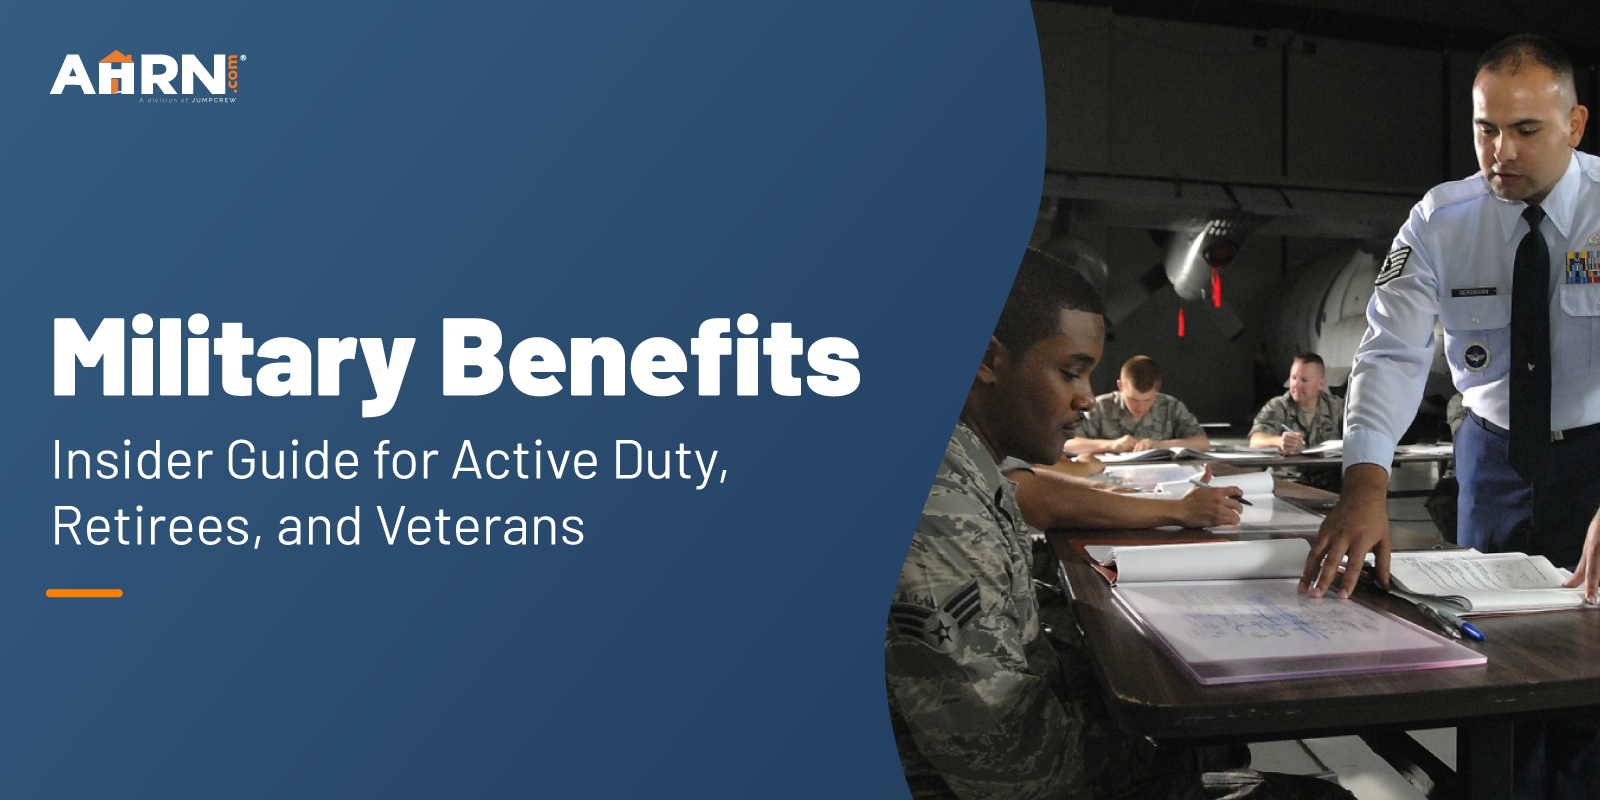 Military Benefits: Insider Guide for Active Duty, Retirees, and Veterans